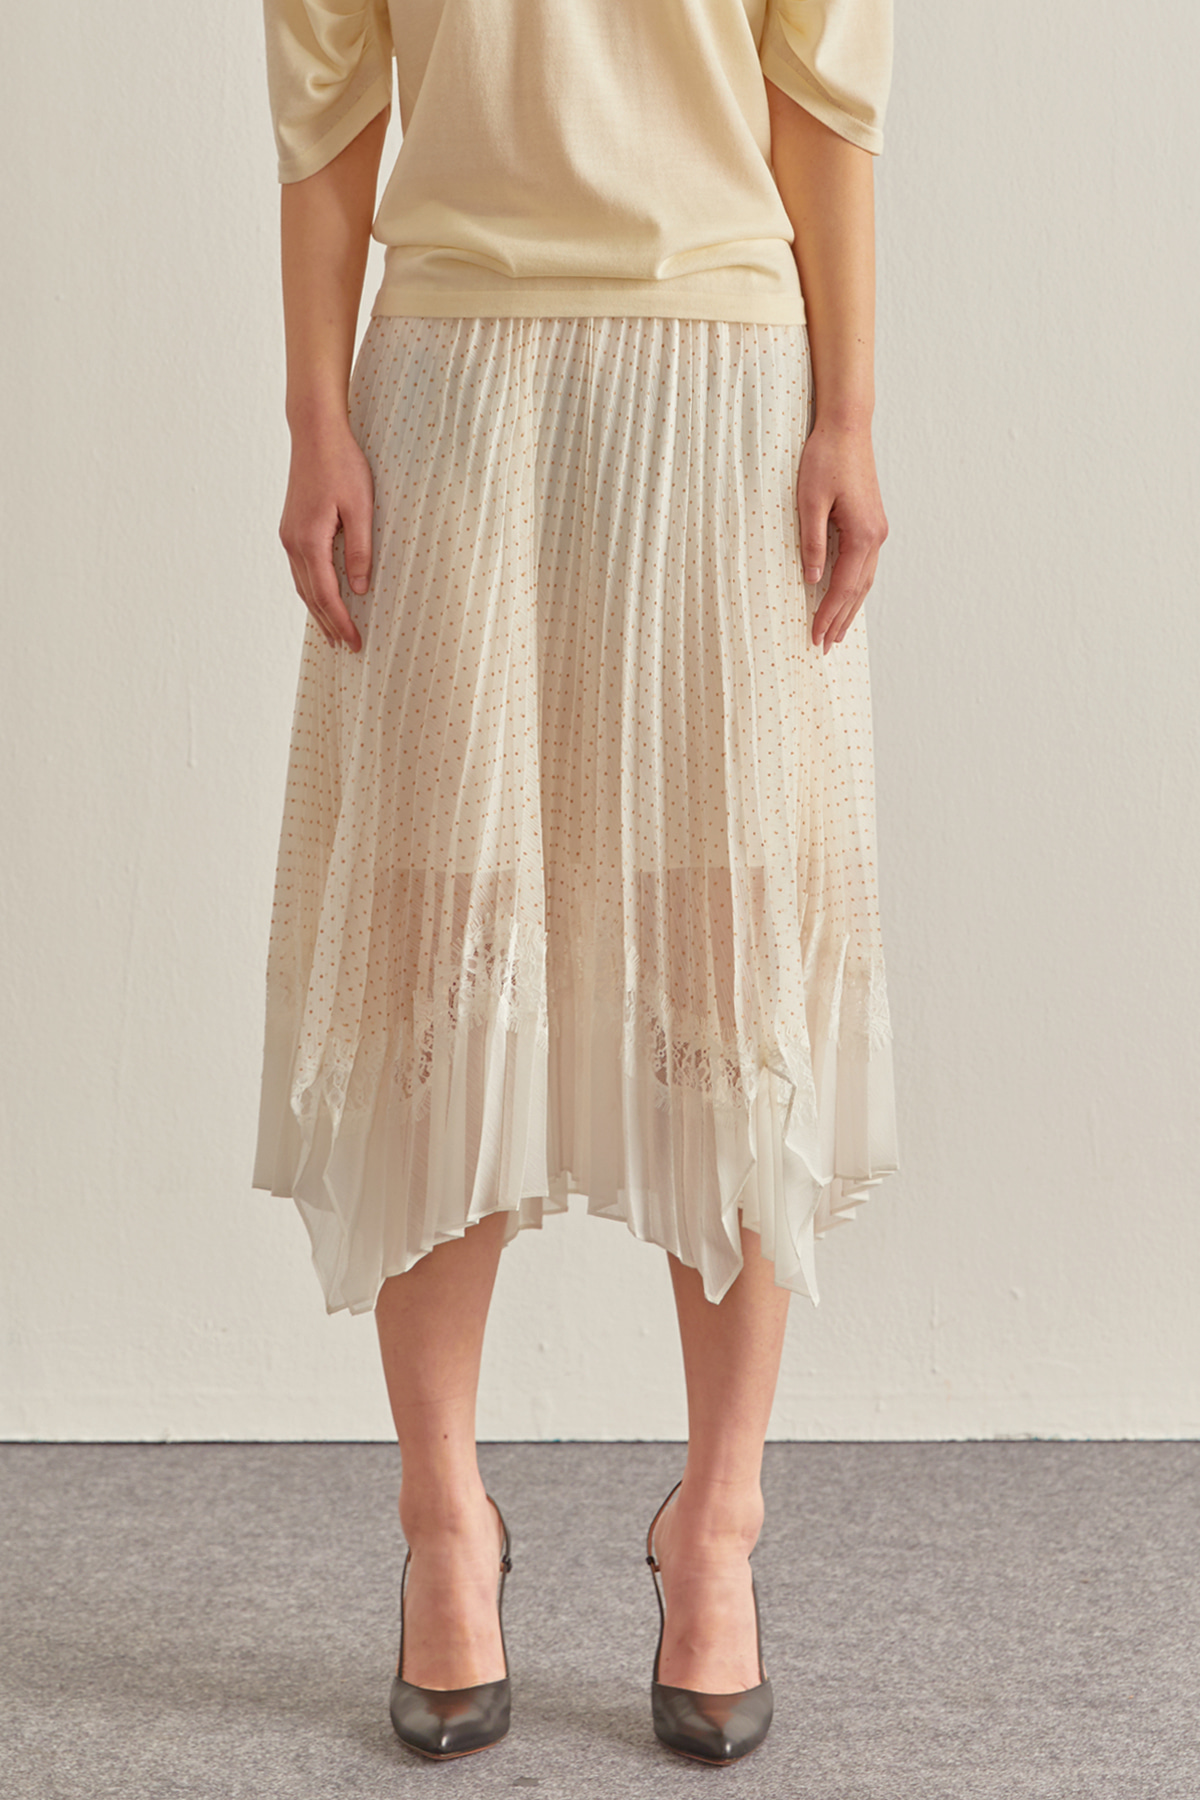 Dot Flocking Chiffon Skirt Ivory